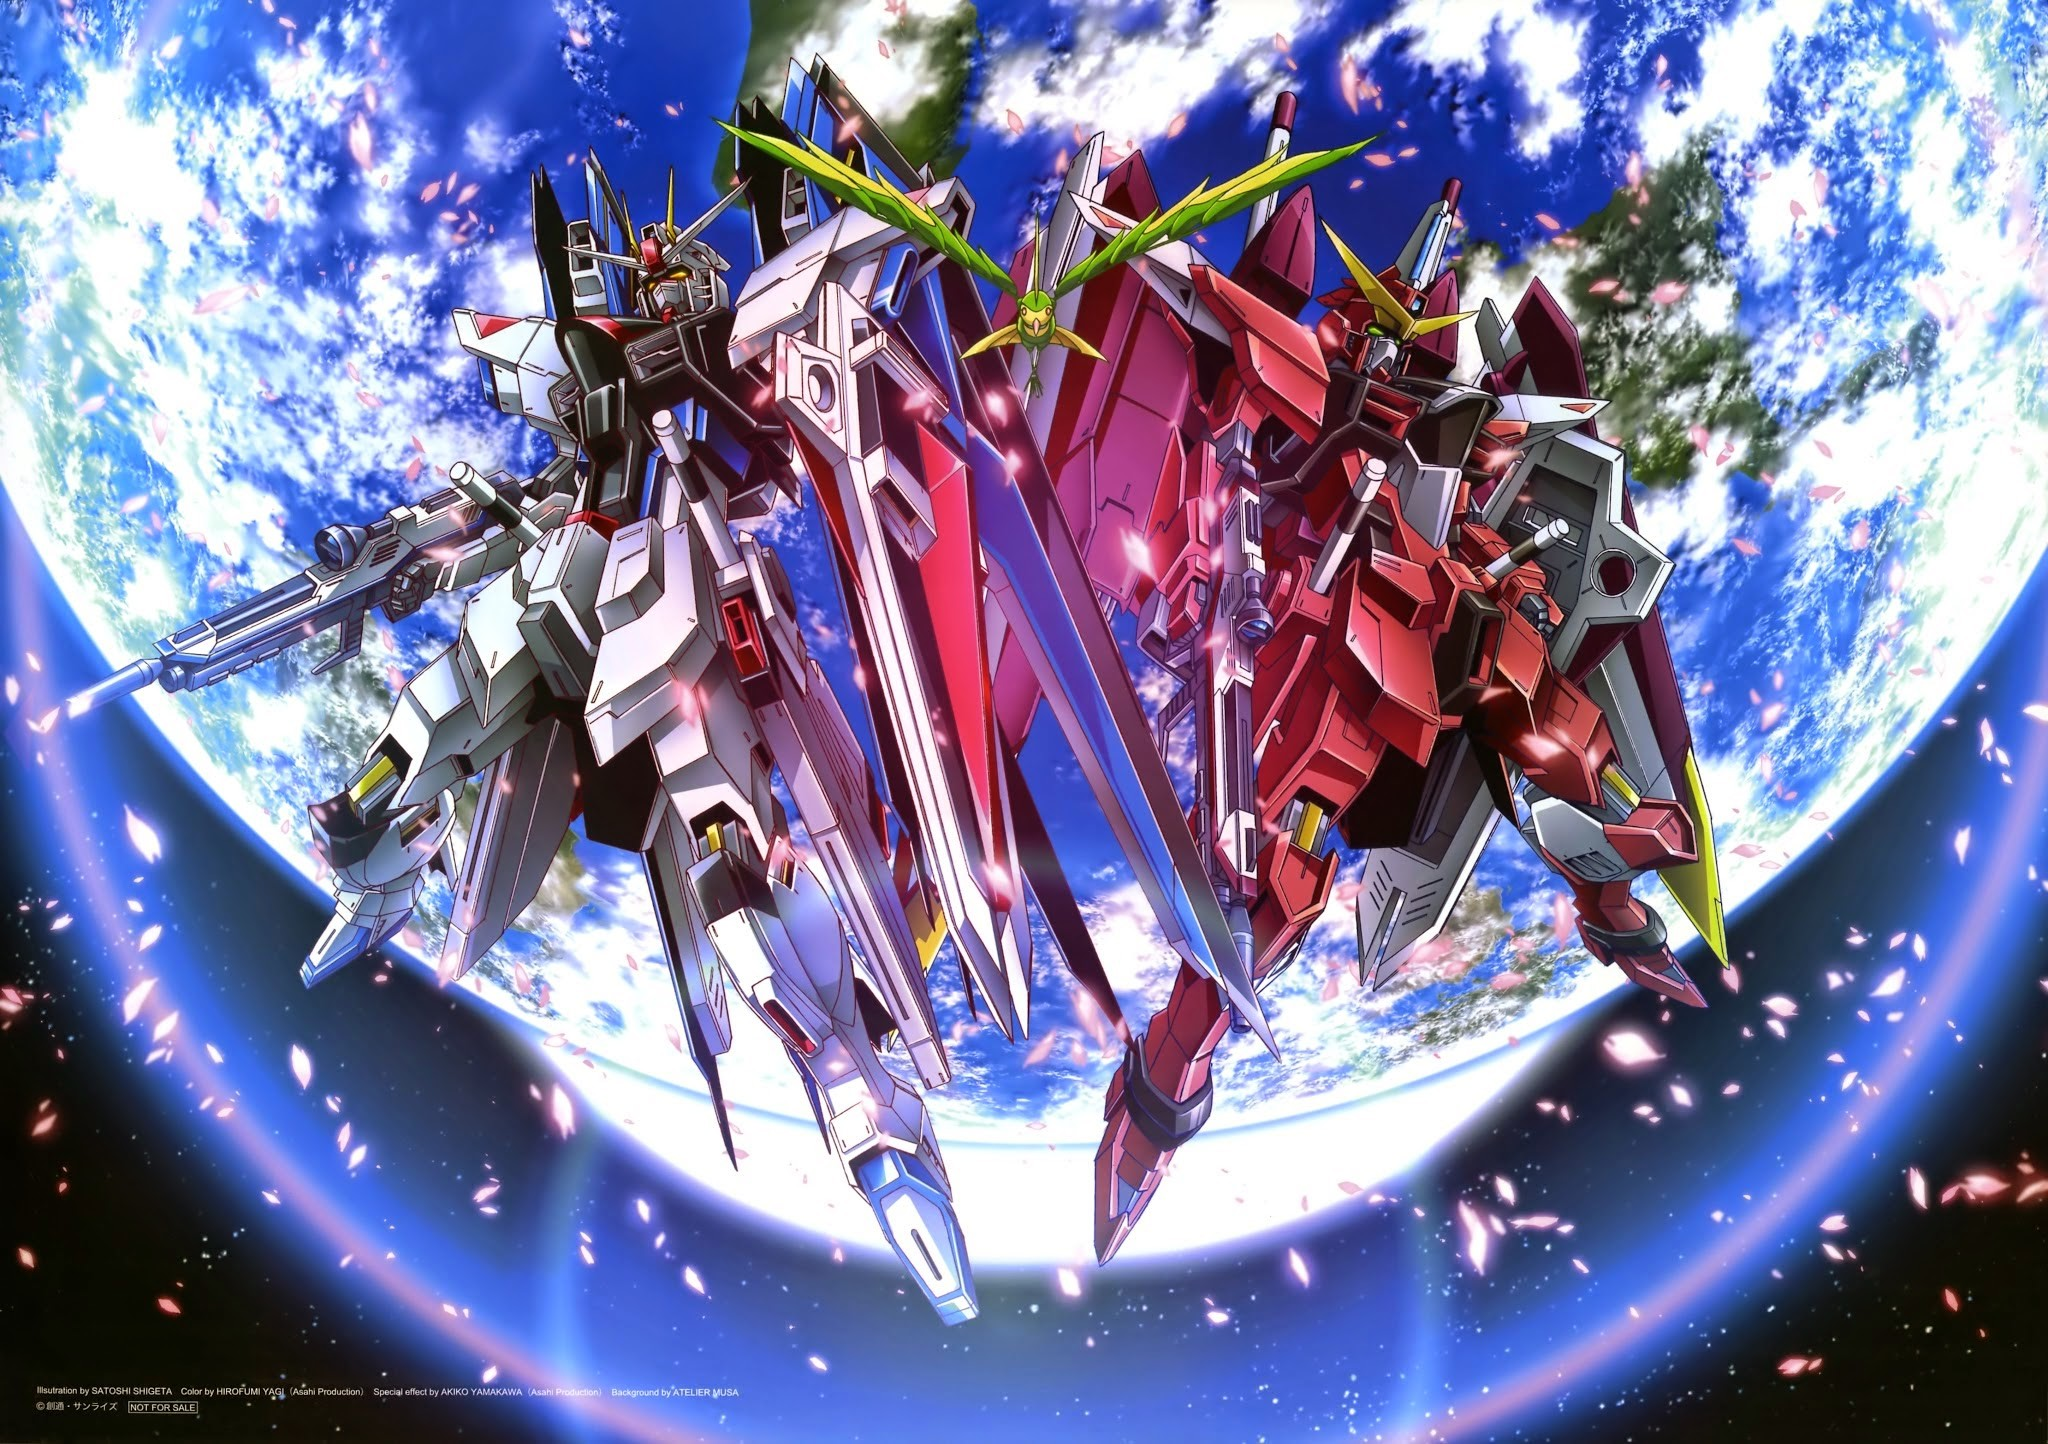 2048x1444 Gundam Seed Wallpaper - Wallpapers Browse